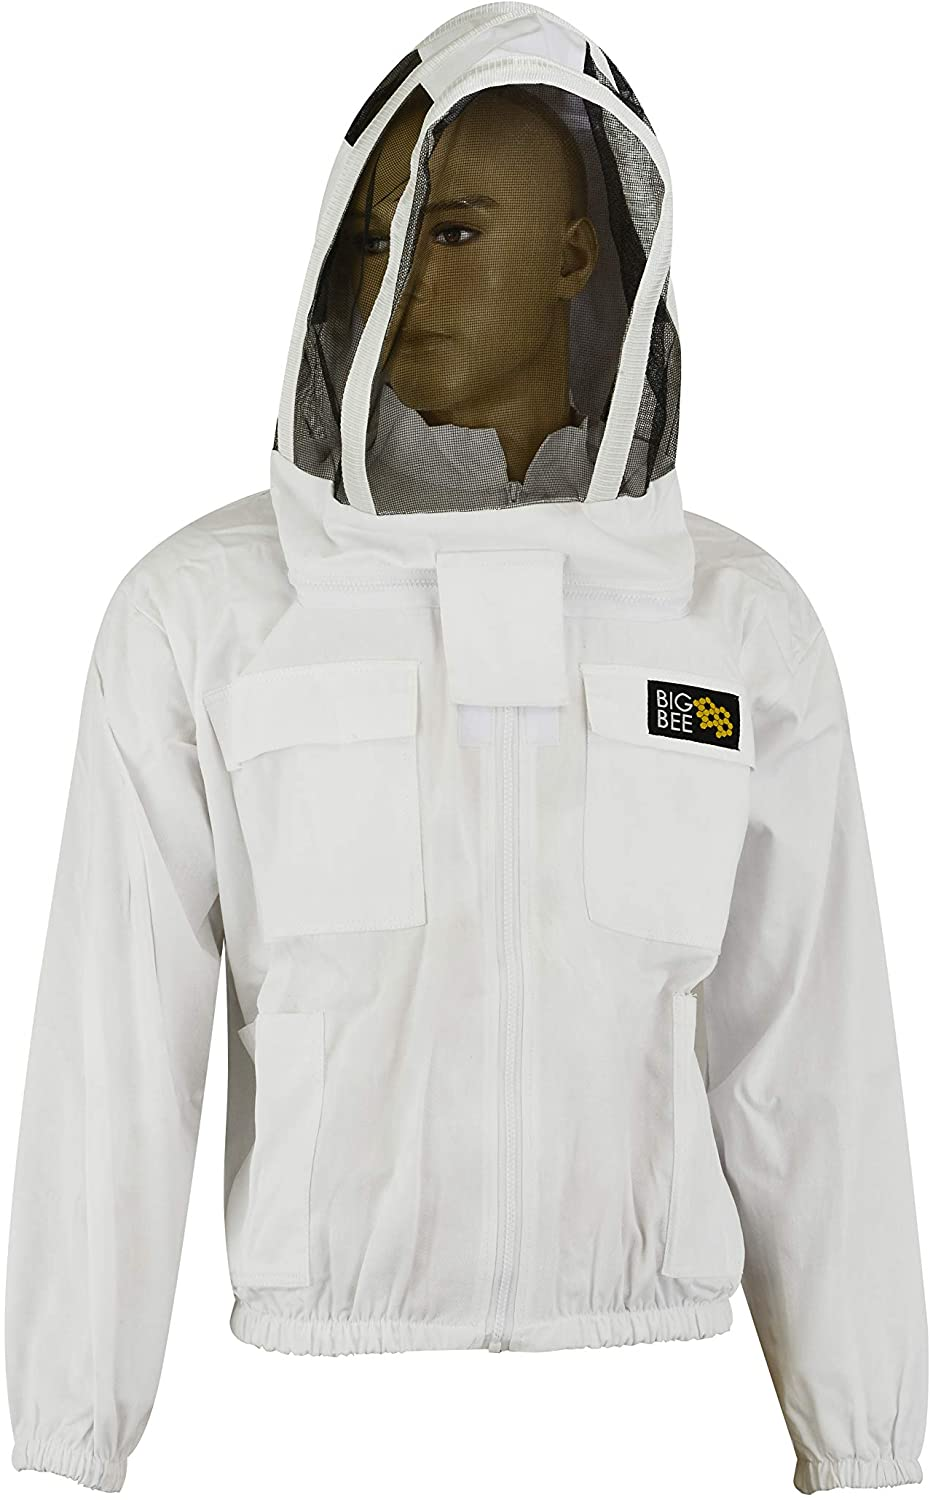 Hugger Glove Company BigBee Bee Keeping Jacket 100% Heavy Cotton